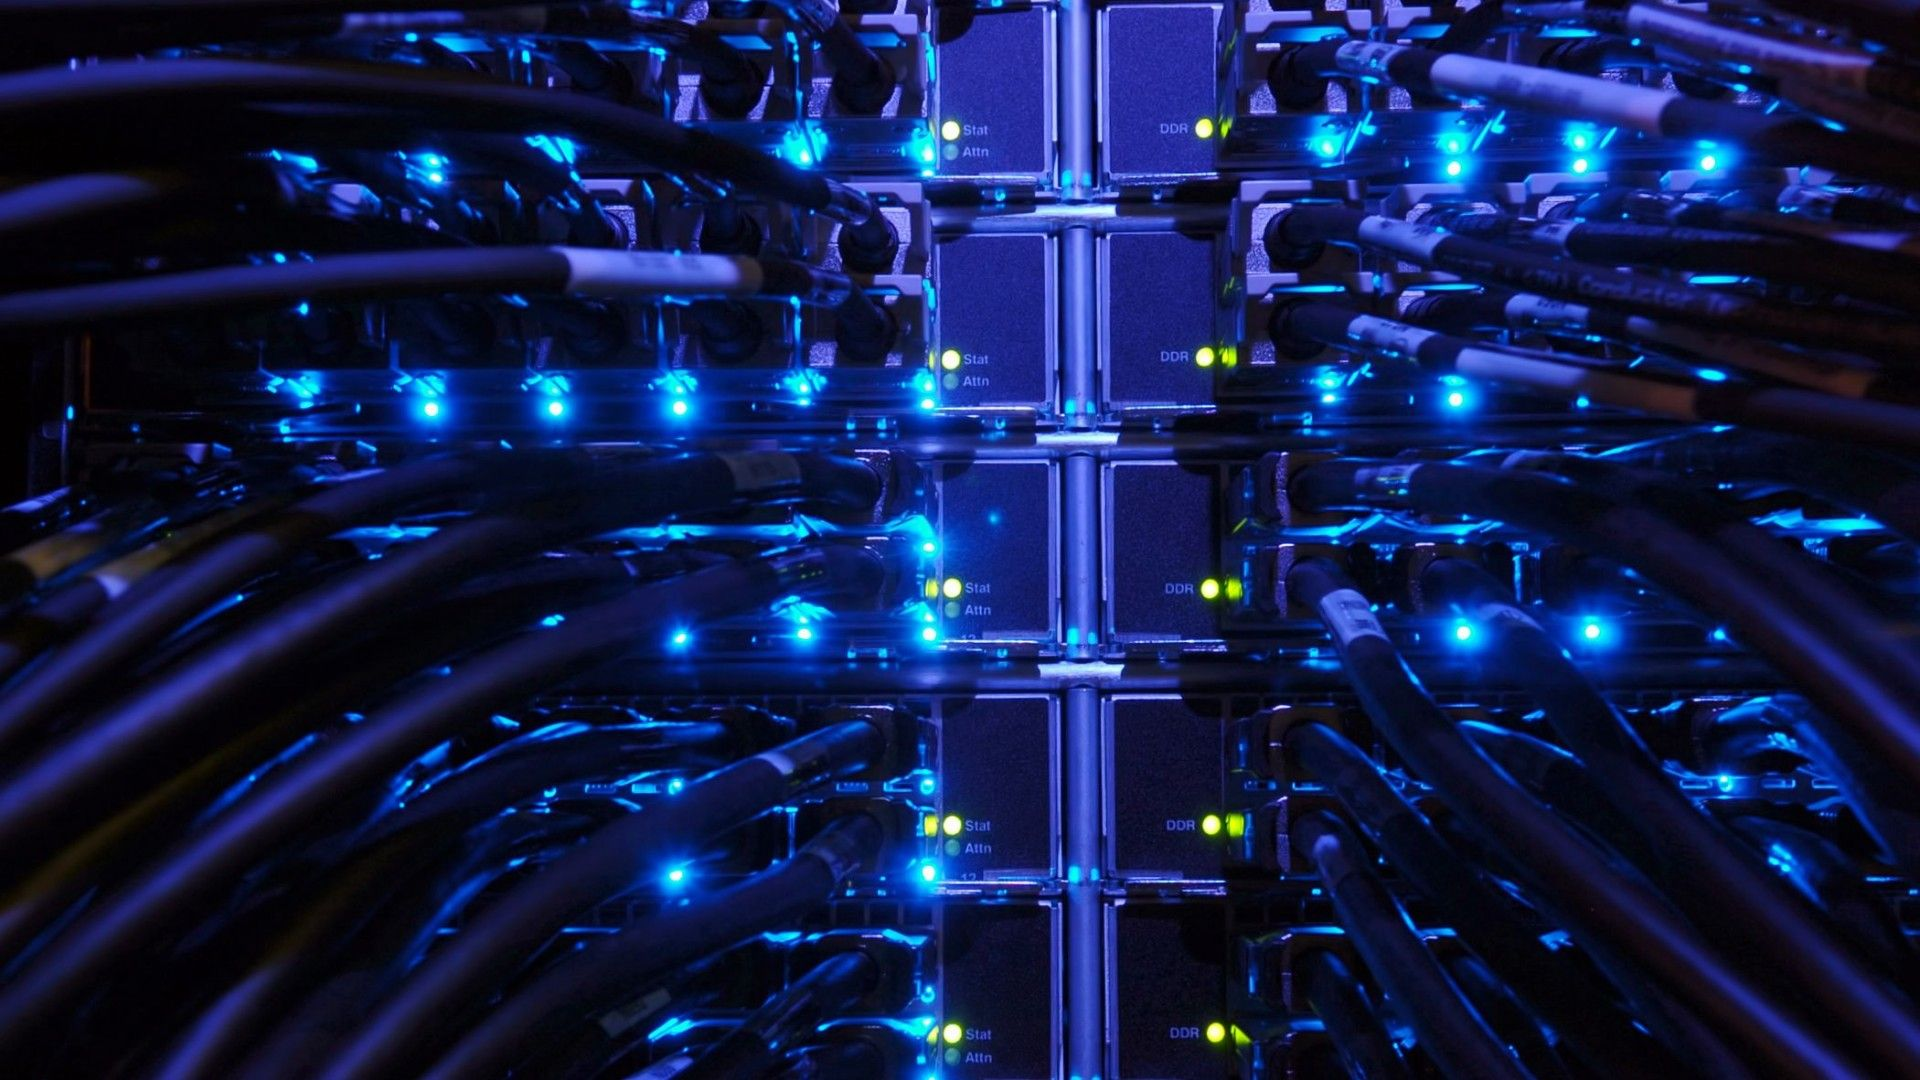 Computer Network Wallpaper Wide Other